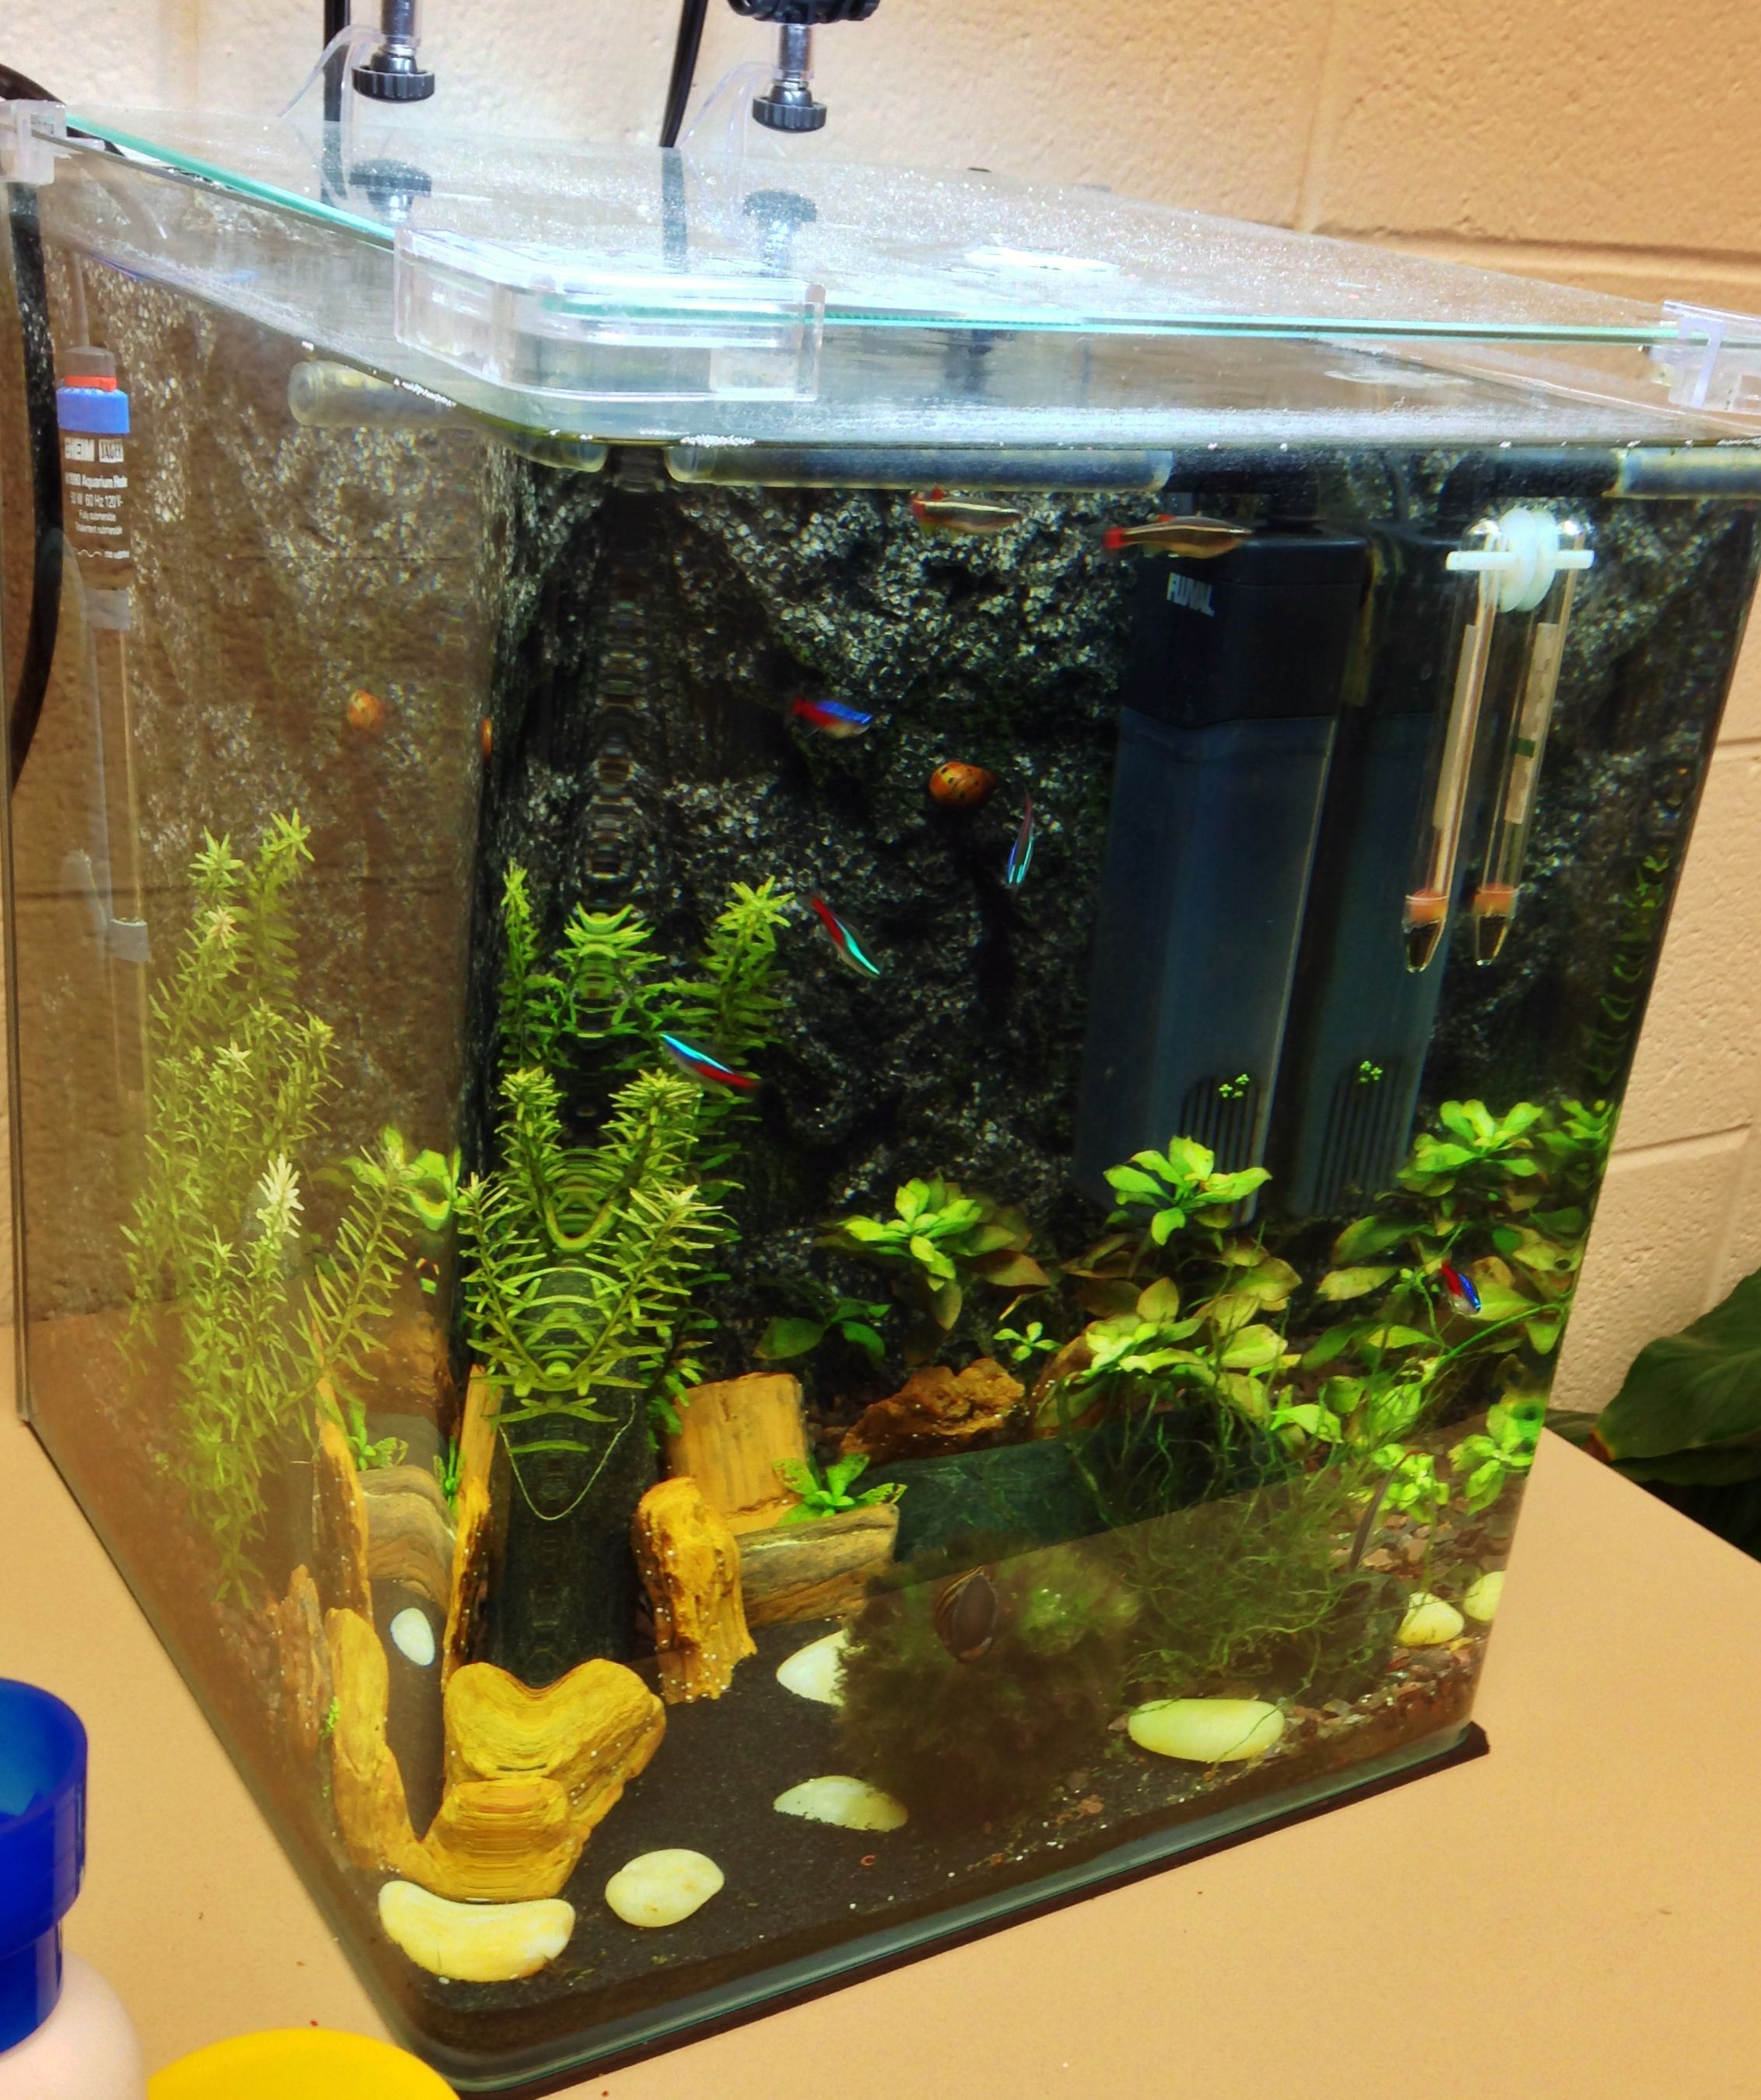 The office tank - I don't really love it as much as my home tank. And it shows...